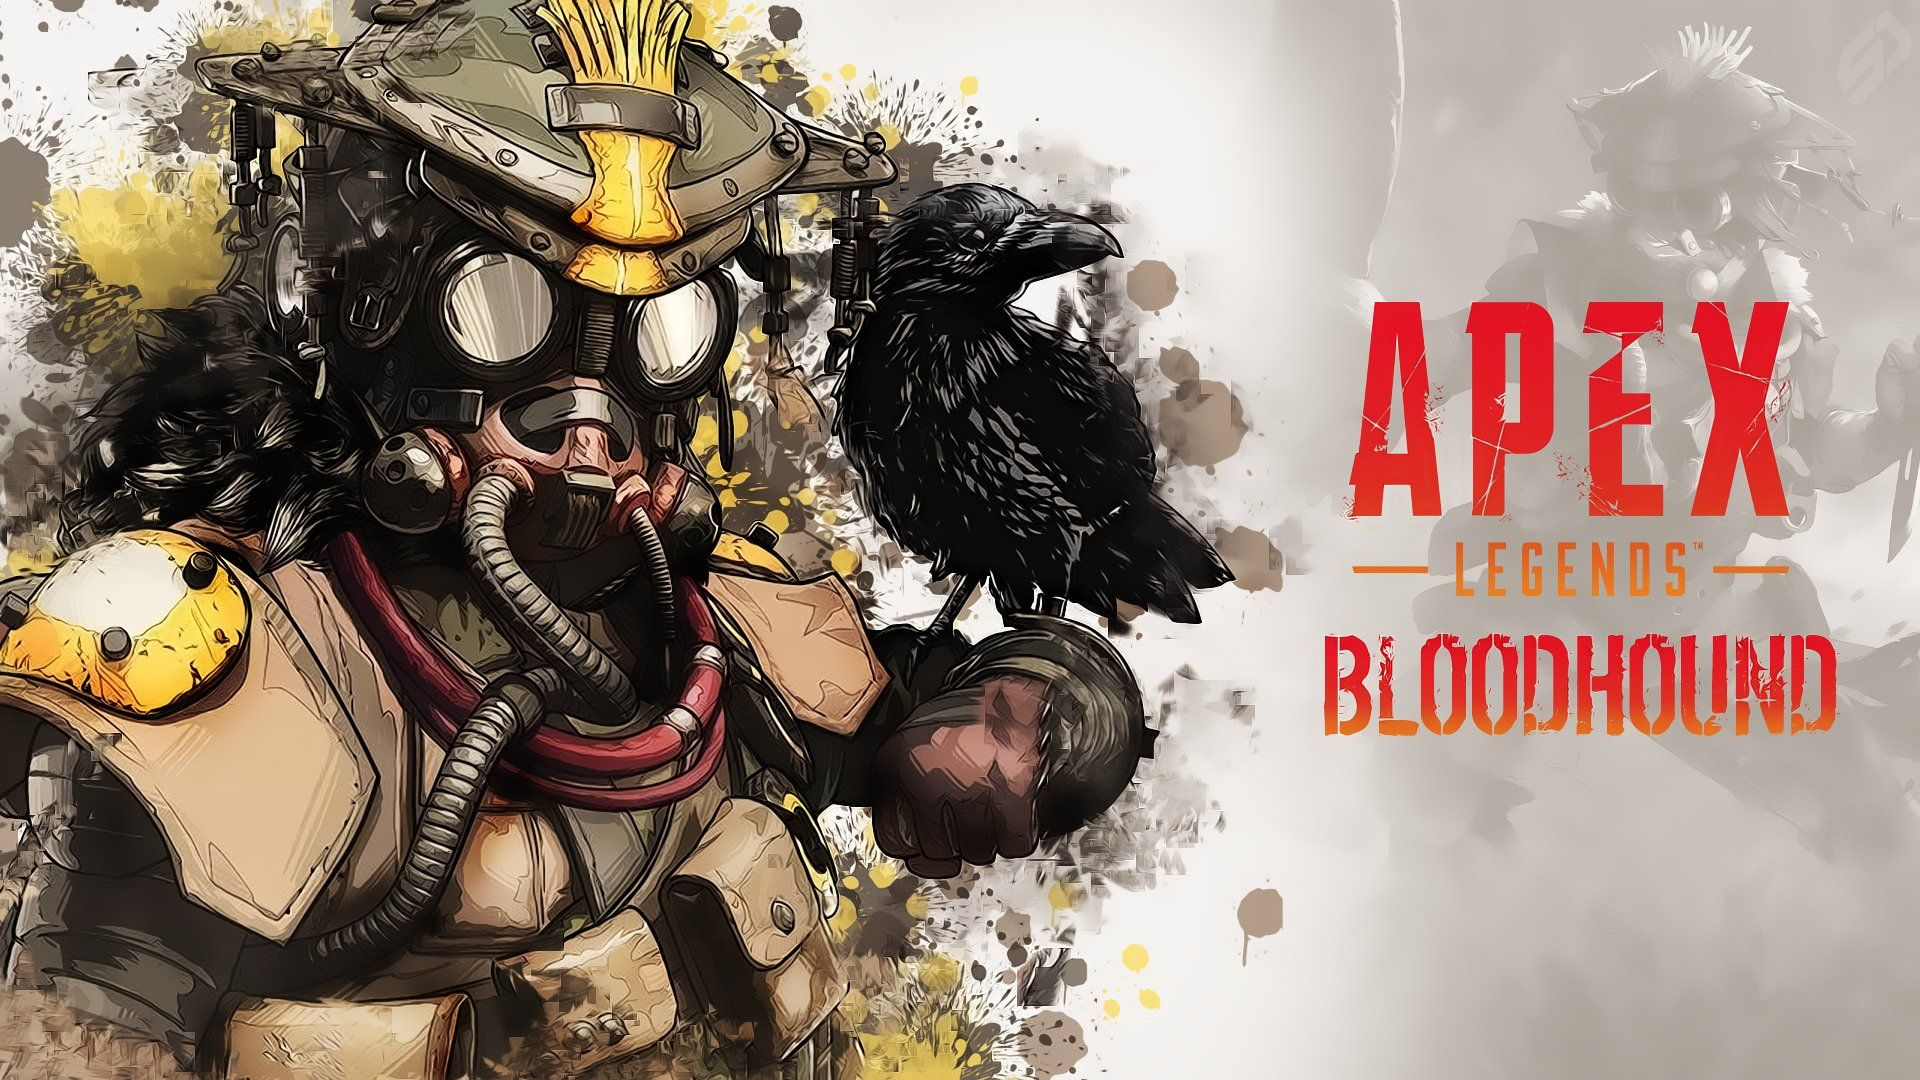 Apex Legends Bloodhound Wallpaper 67315 1920x1080px 1920x1080